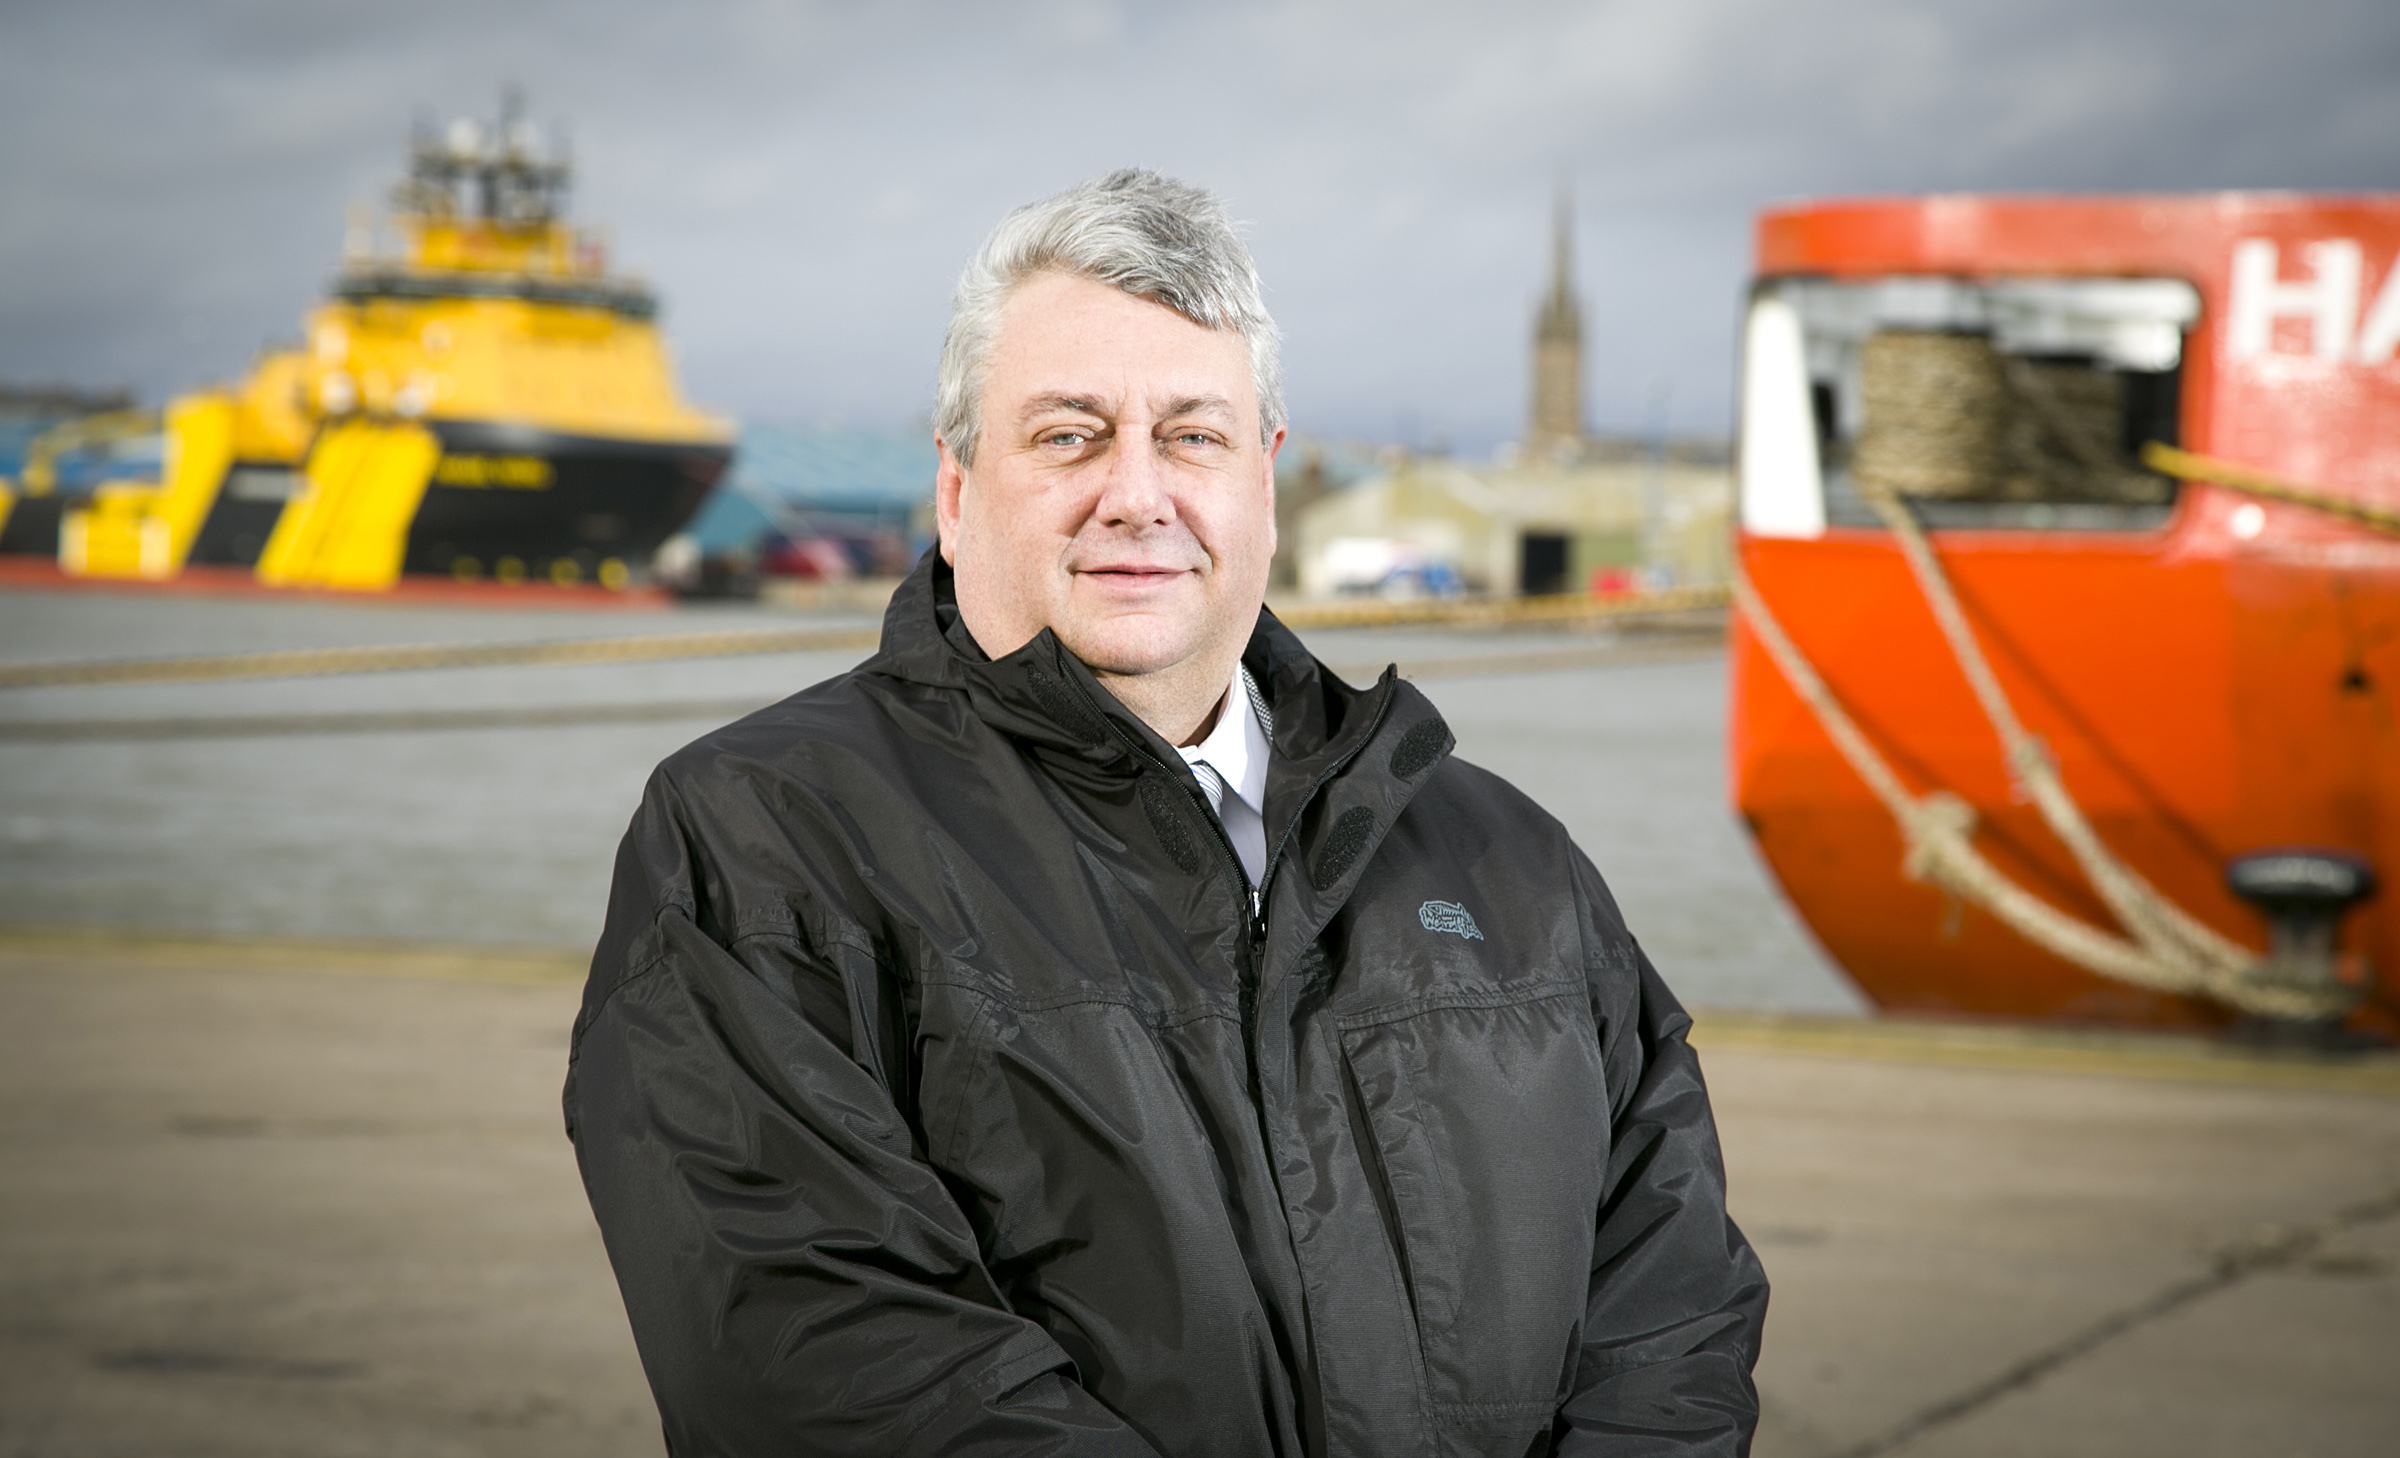 Dave Price, the chief exec of the International Well Control Forum